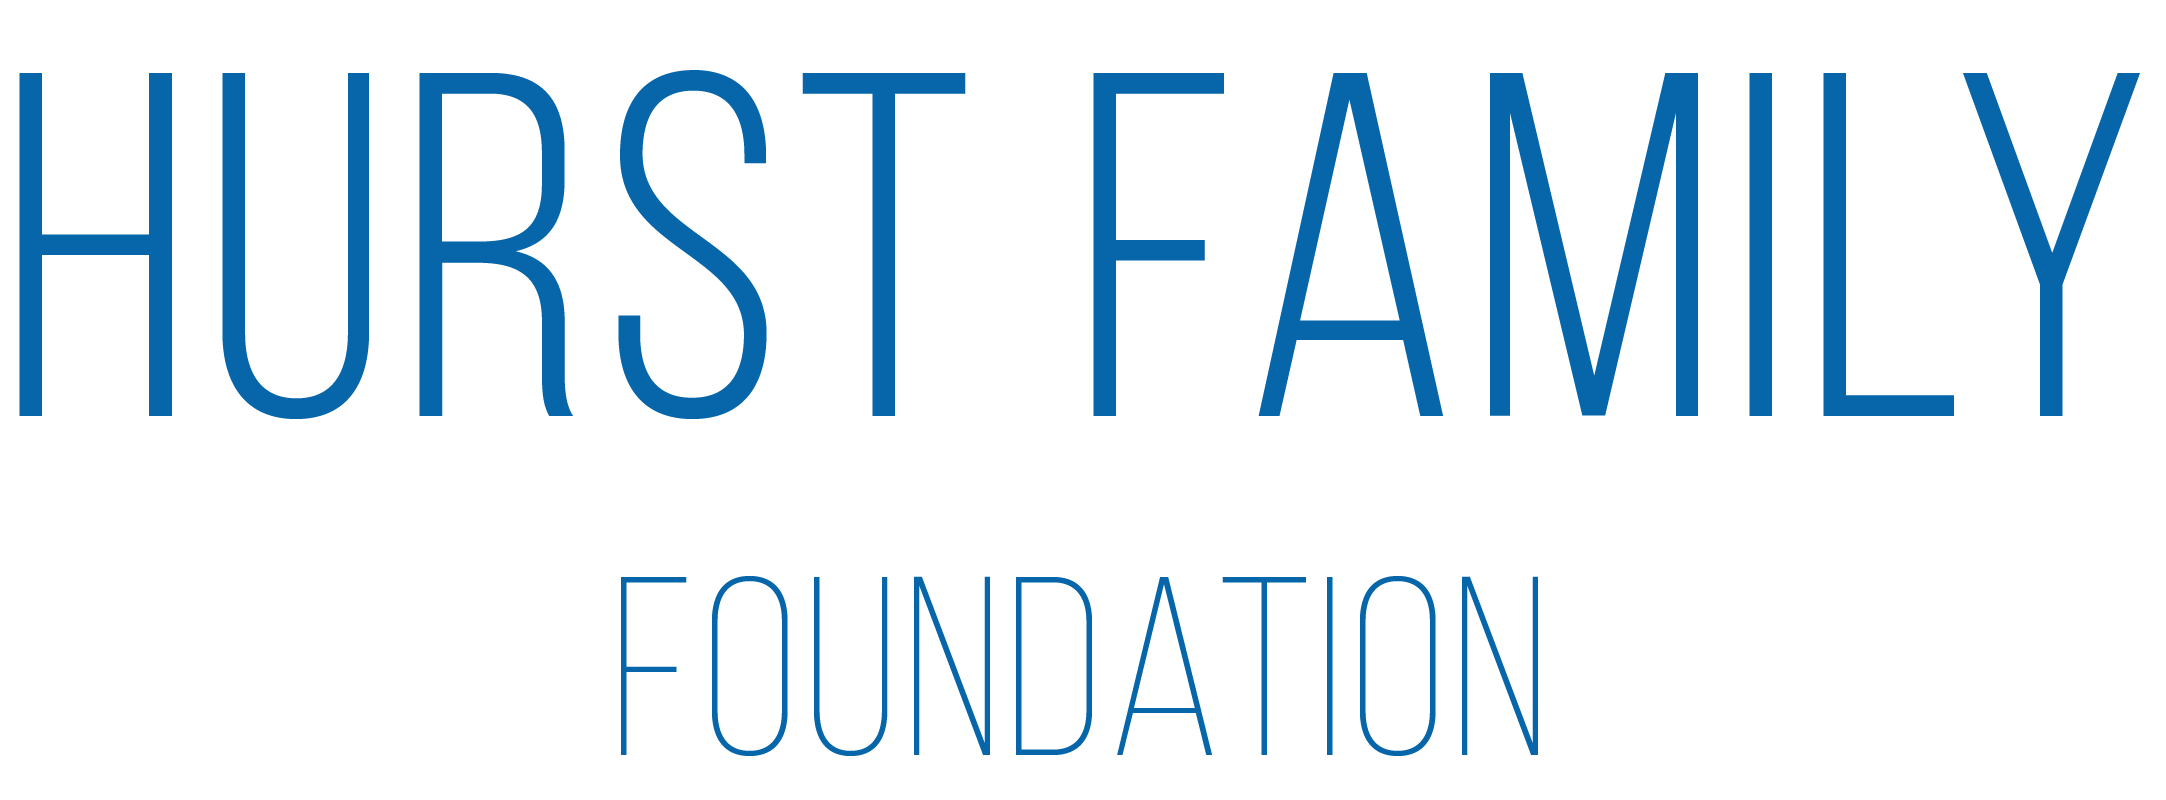 Hurst Family Foundation